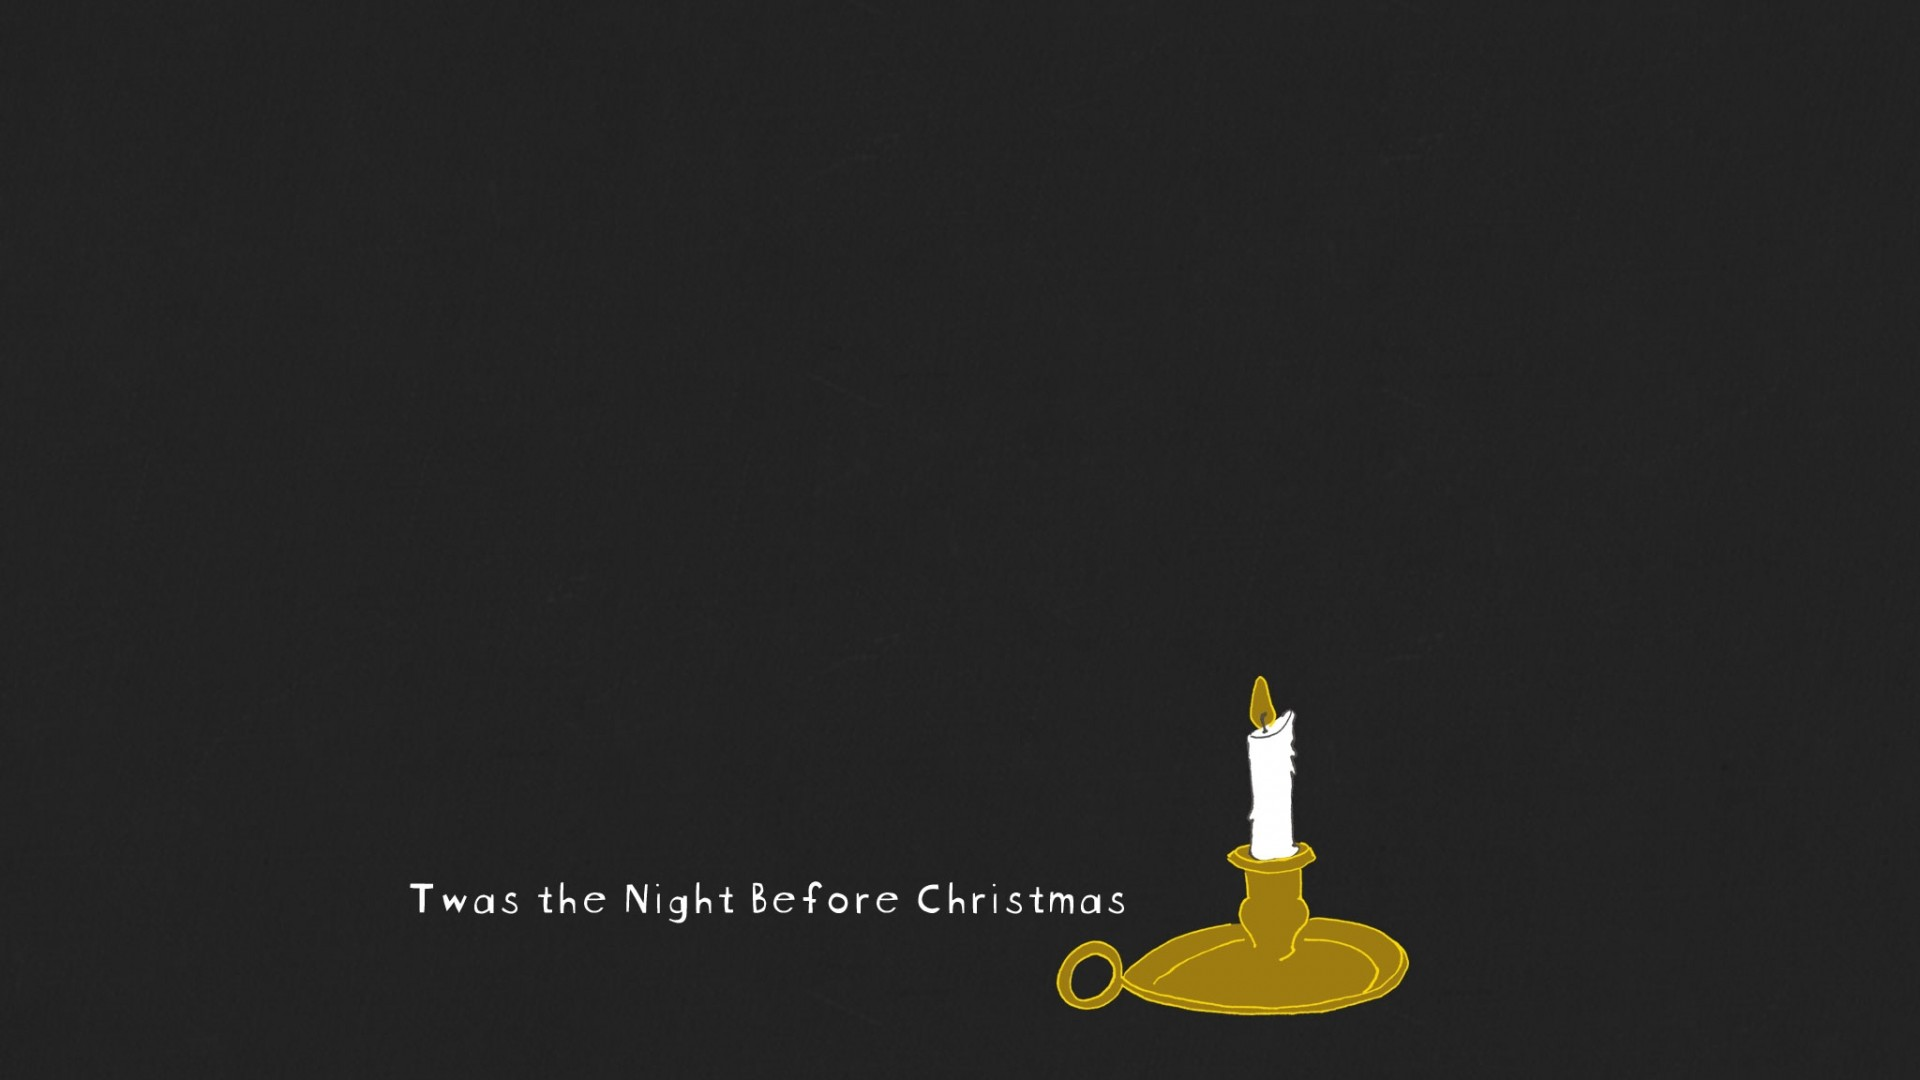 Night Before Christmas Wallpaper Posted By Samantha Simpson